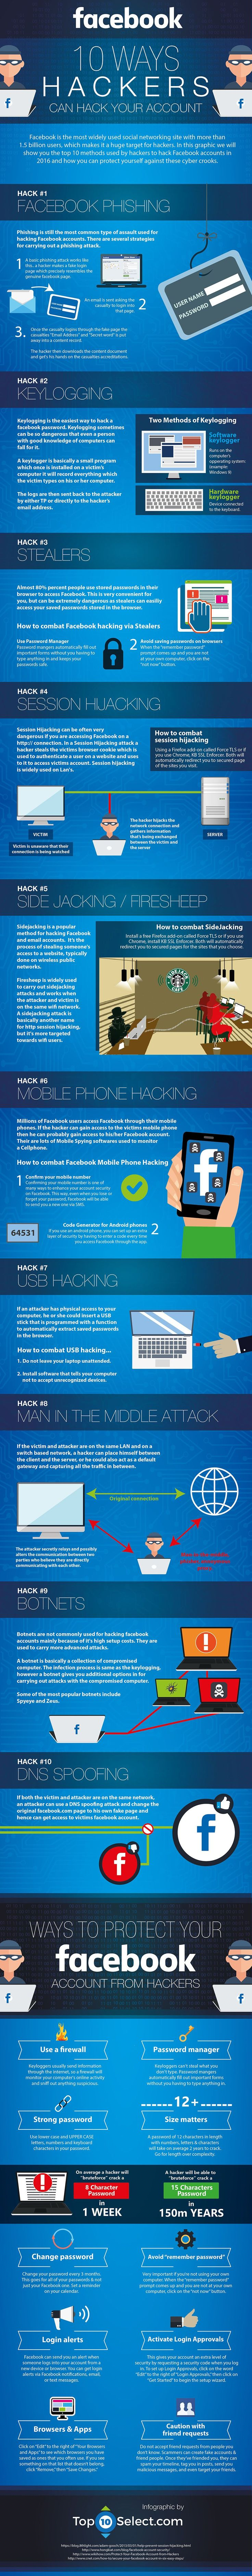 10 Ways Hackers Can Hack A Facebook Account & How To Protect It (infographic)